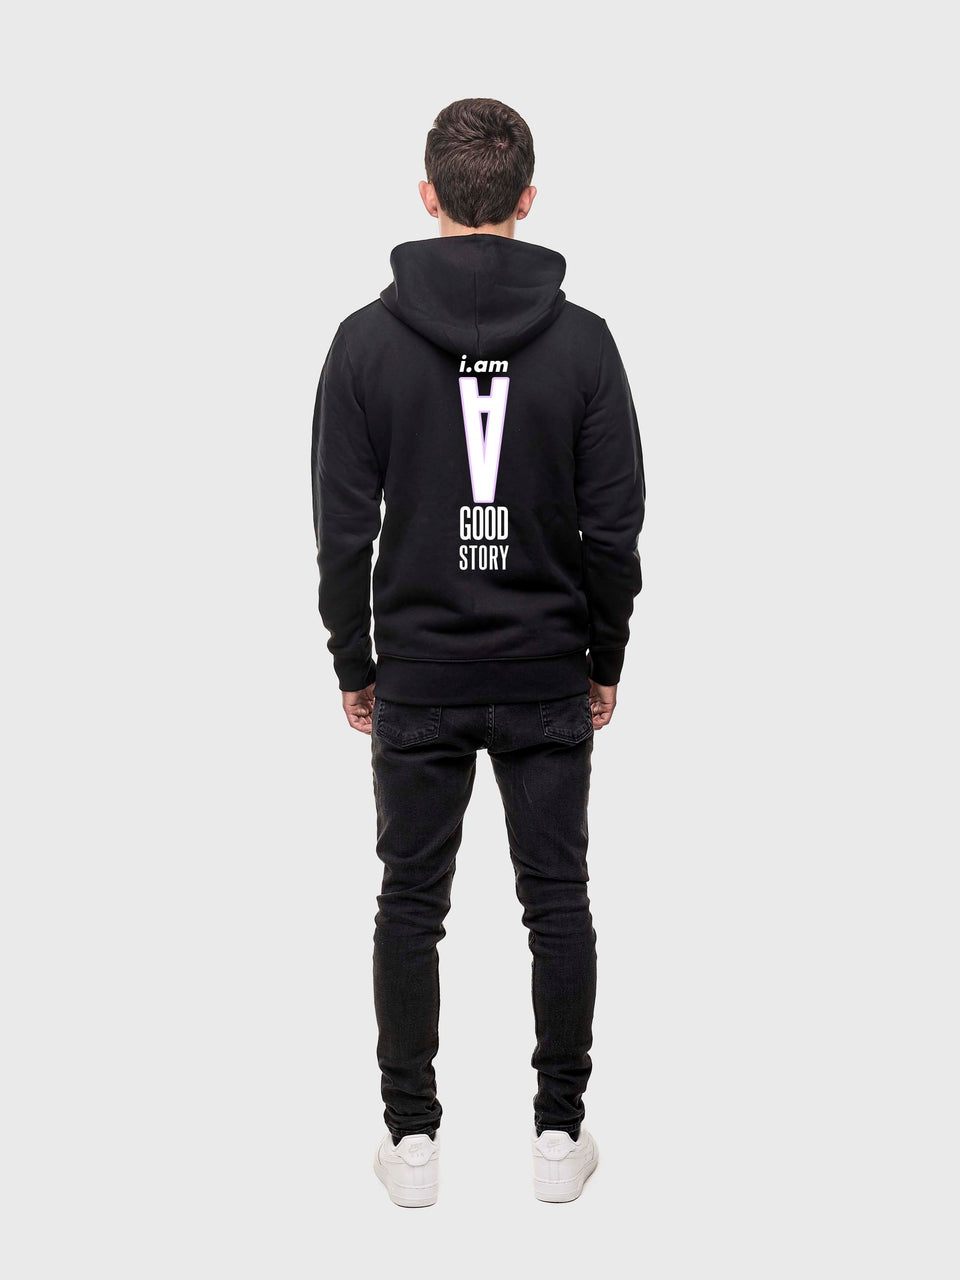 A good story - Black - unisex zip up hoodie